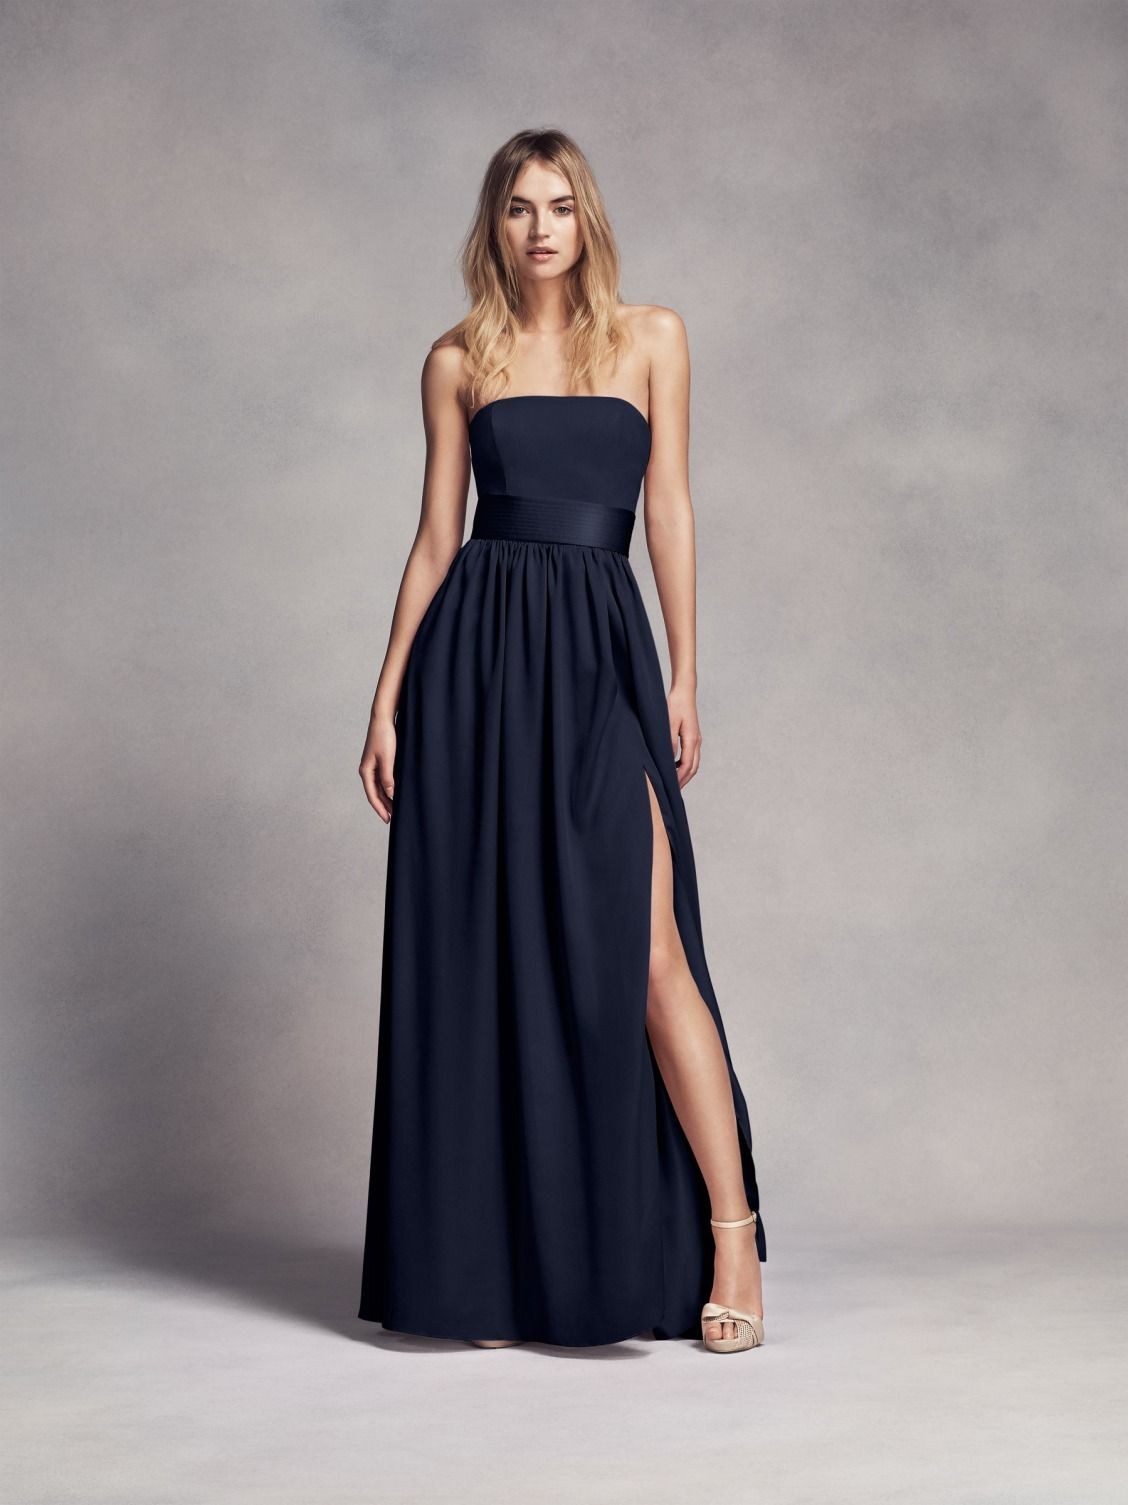 6e1942a115f Long Strapless Midnight Blue White by Vera Wang Bridesmaid Dress available  at David s Bridal